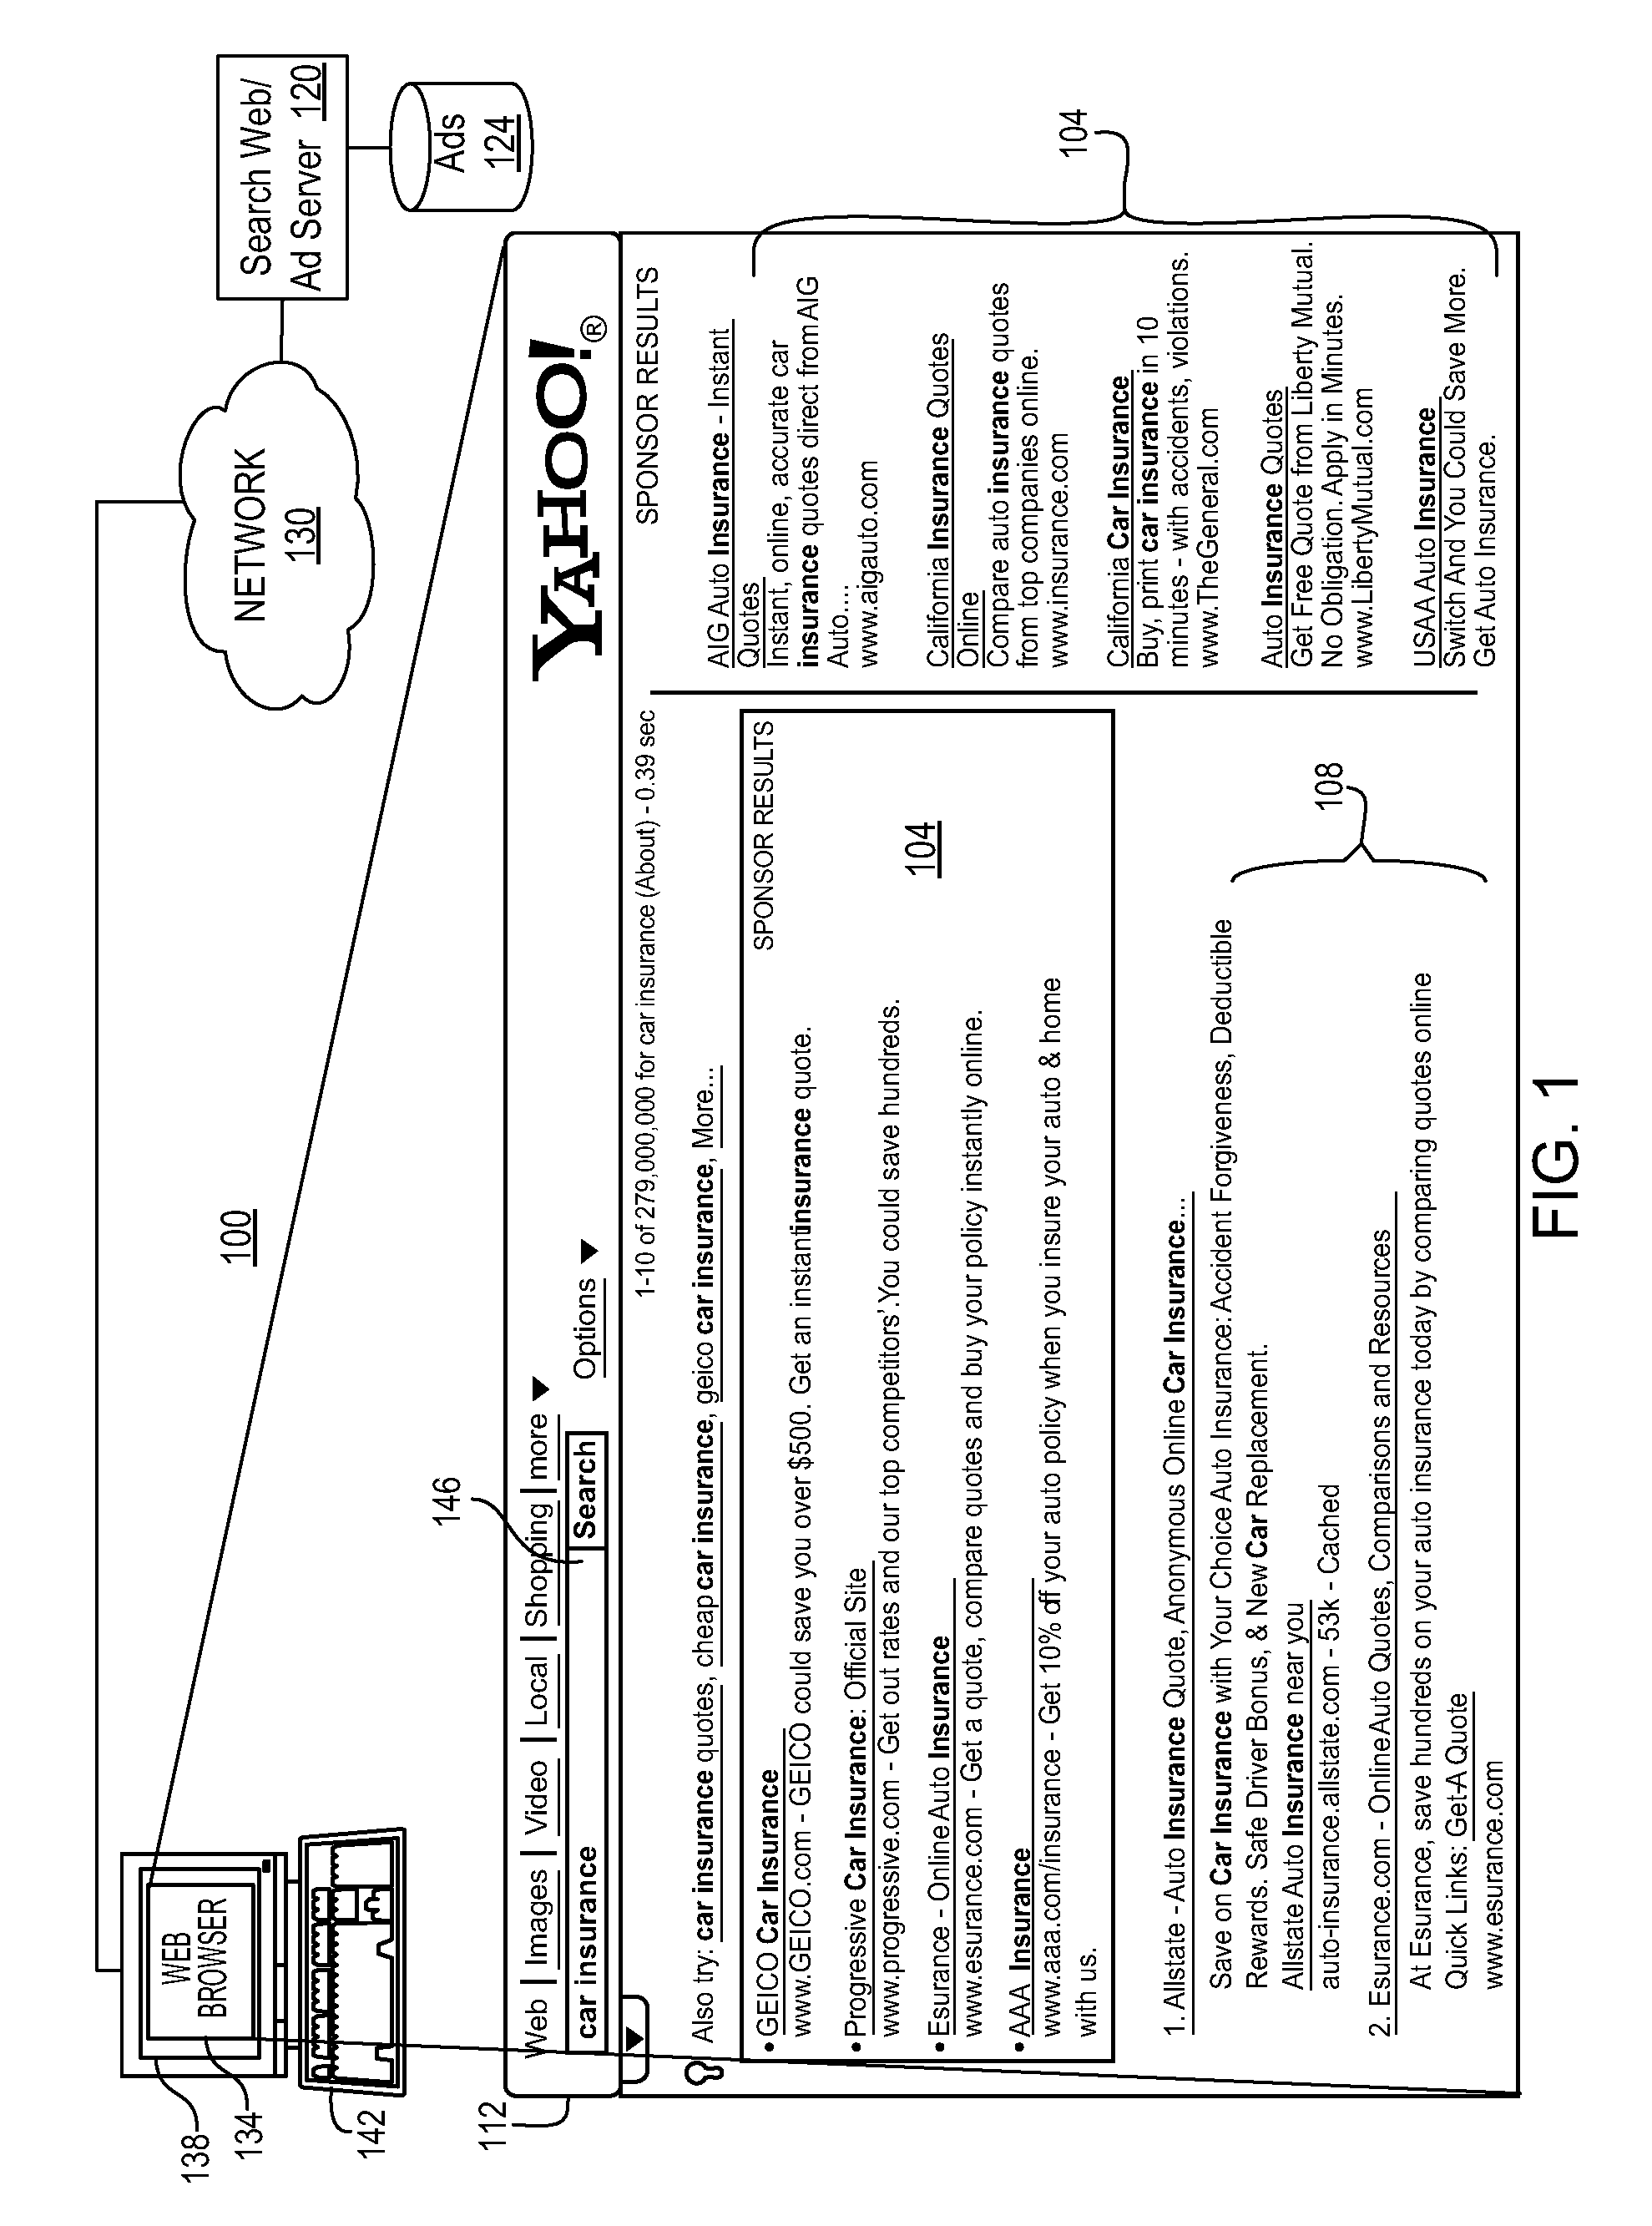 Esurance Quote Patent Us20100161605  Context Transfer In Search Advertising